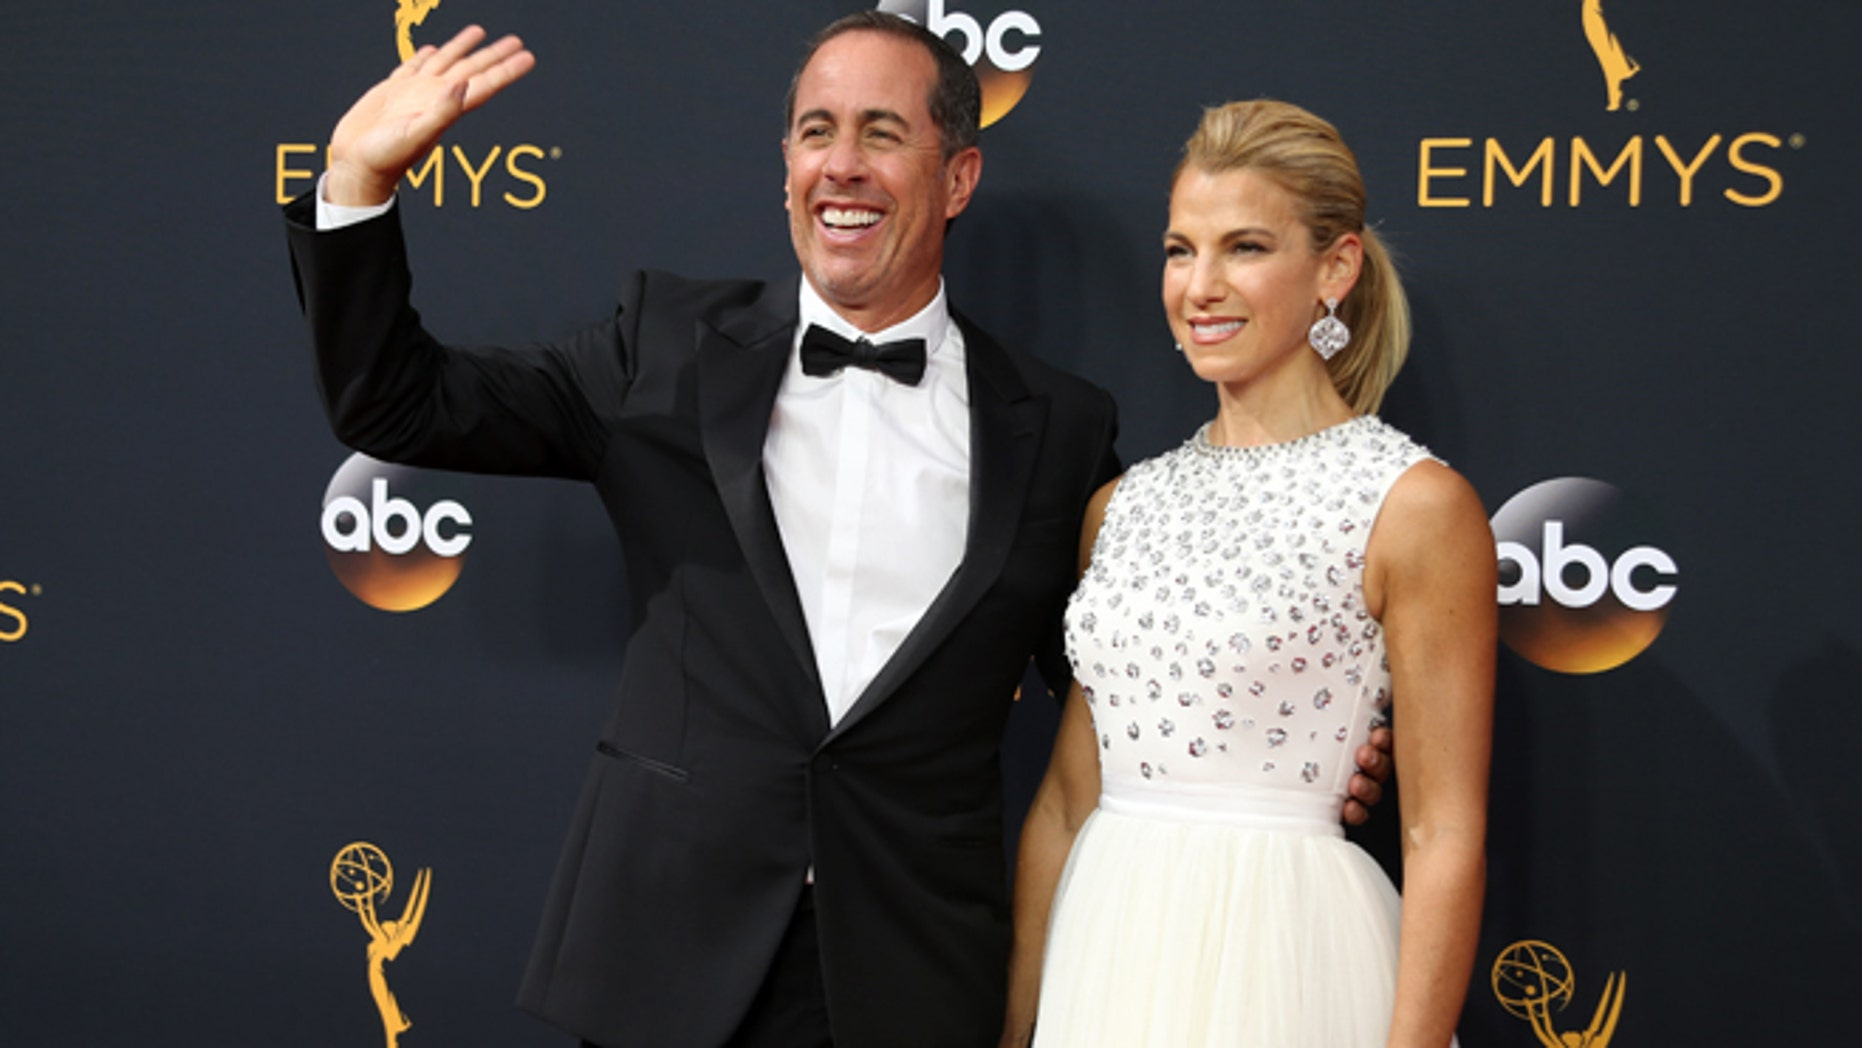 Jerry Seinfeld appeared to shade Kesha on Instagram by posting a photo of him hugging his wife Jessica.